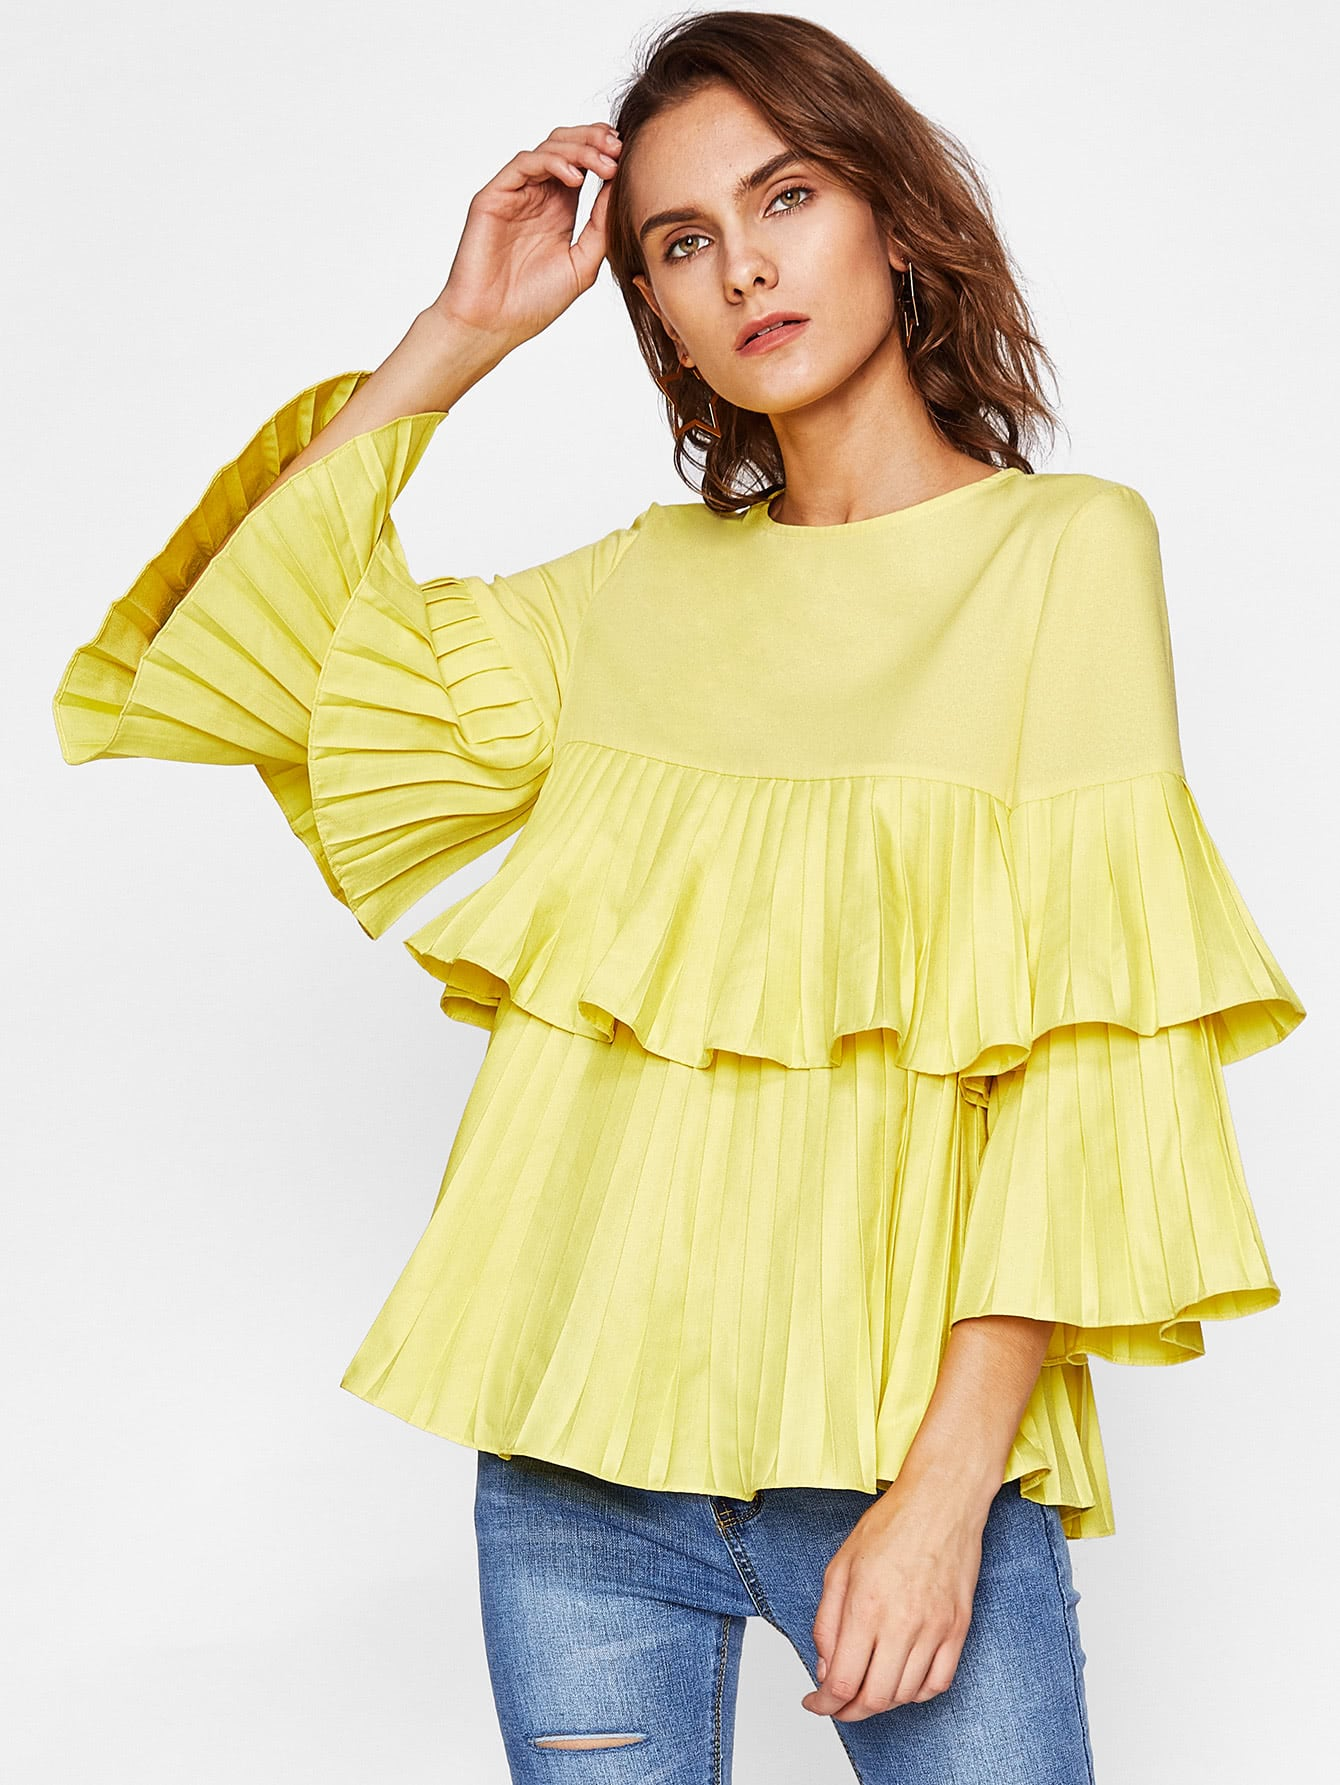 73f0d34232d34 Tiered Pleated Bell Sleeve And Flounce Blouse EmmaCloth-Women Fast ...